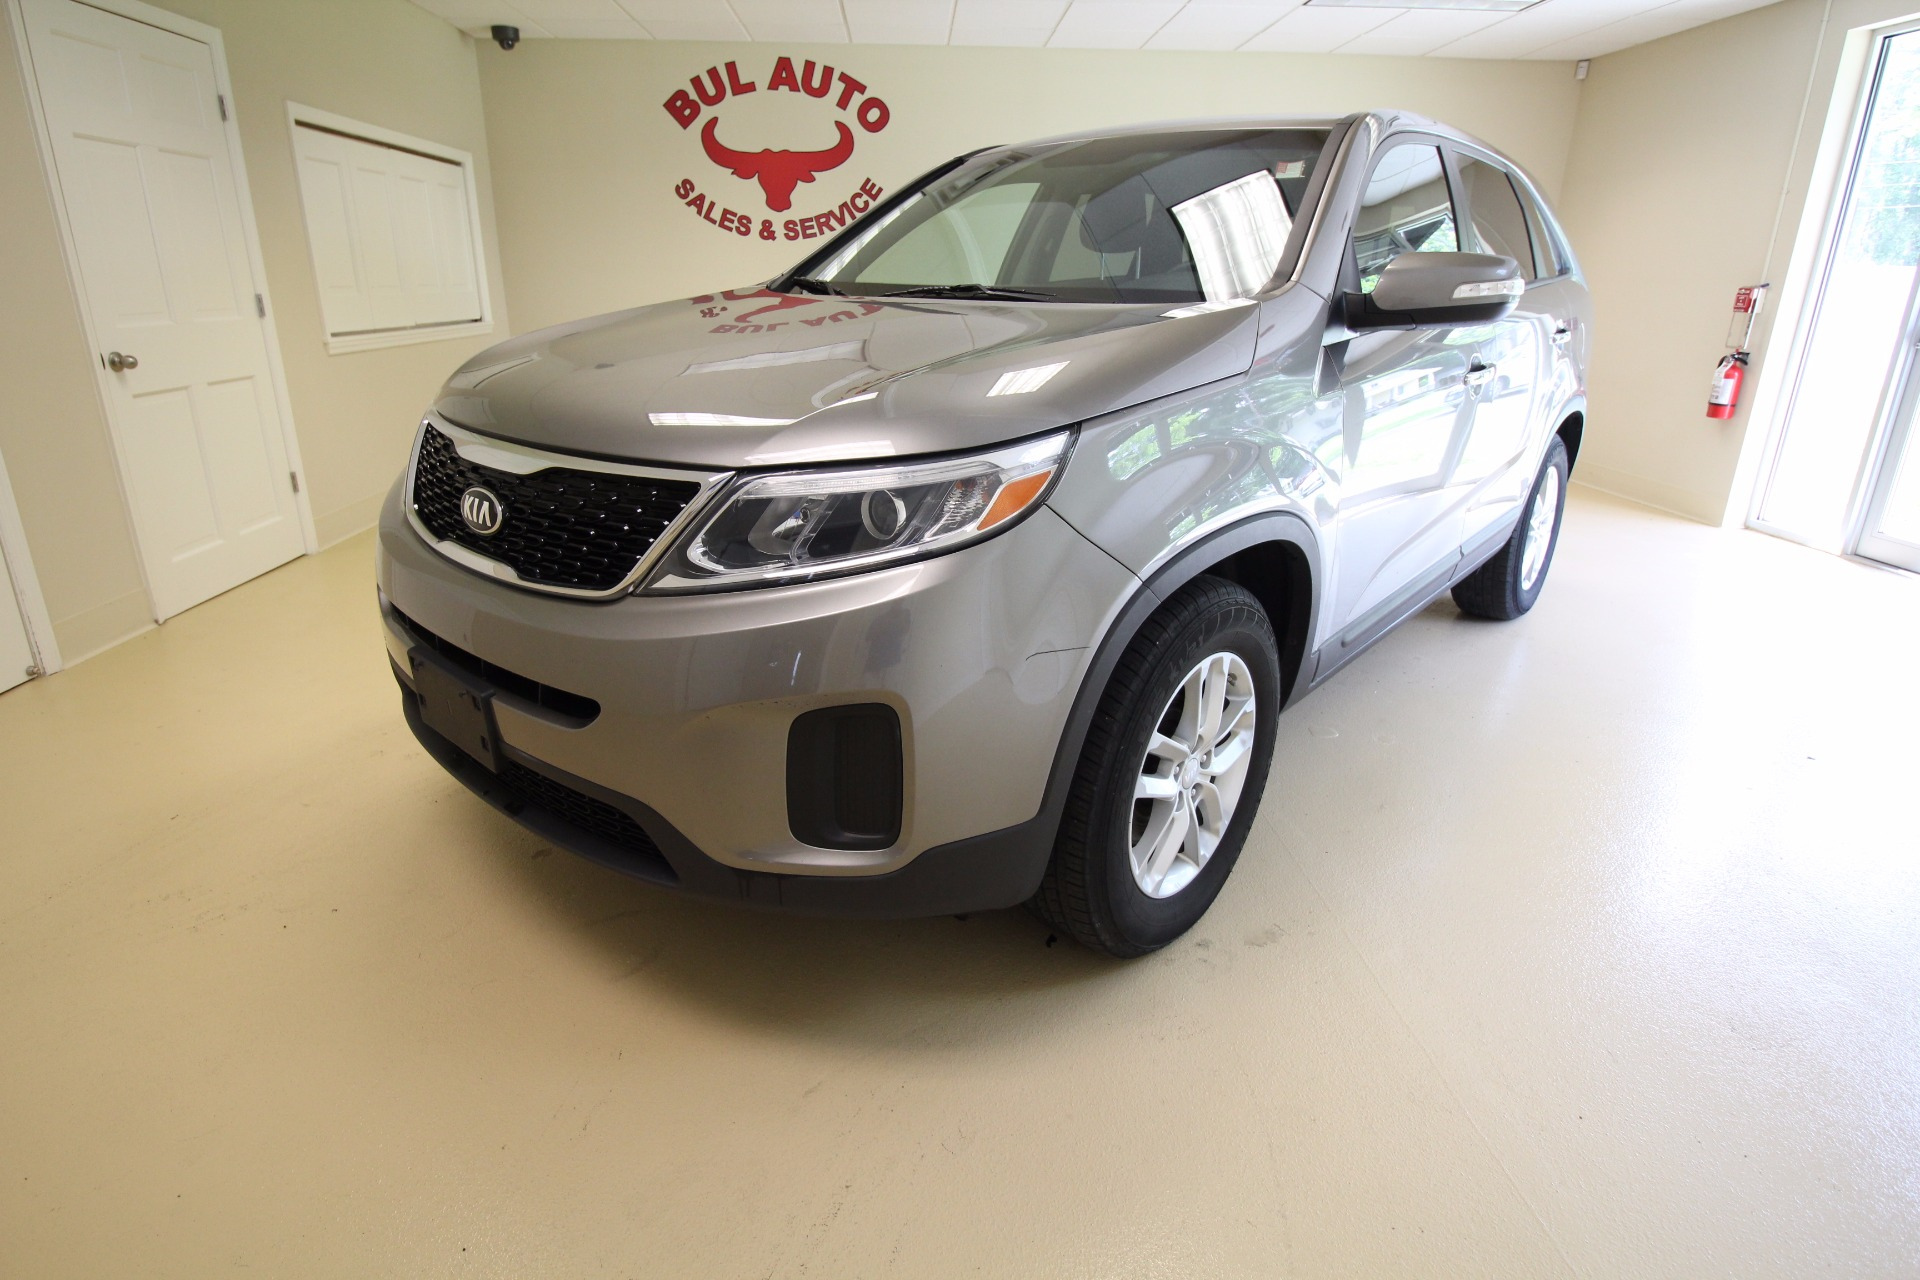 2014 kia sorento lx 2wd stock 17094 for sale near albany ny ny kia dealer for sale in. Black Bedroom Furniture Sets. Home Design Ideas